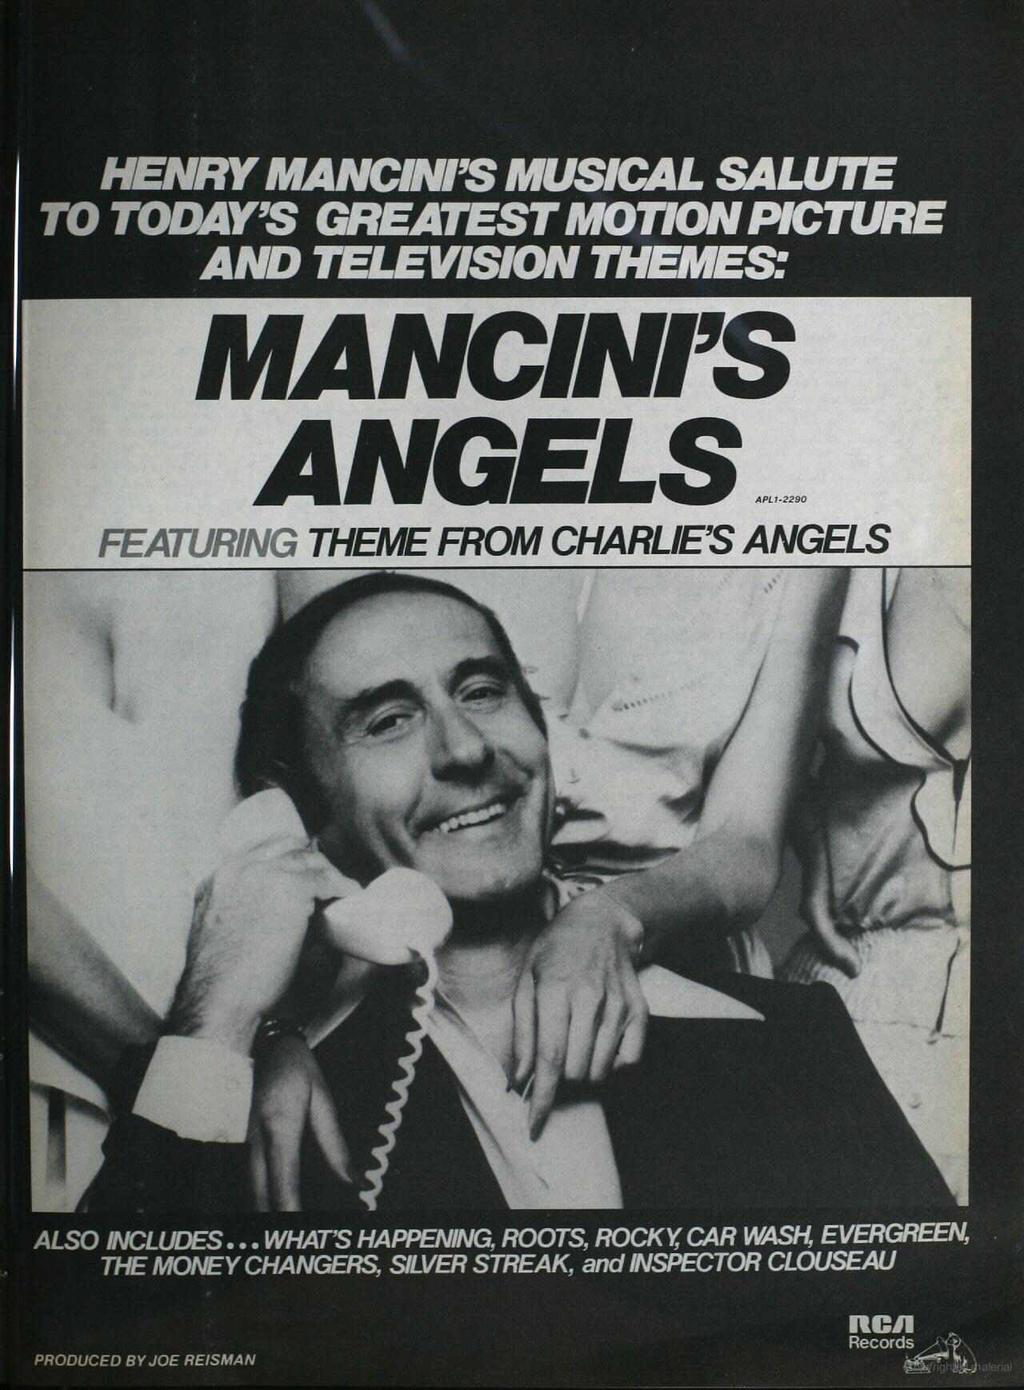 HENRY V. Log A'I ì MUSICAL SALUTE TO TODAY'S GREATEST MOTION PICTURE AND TELEVISION THEMES: MANCINI'S ANGELS.o.=.